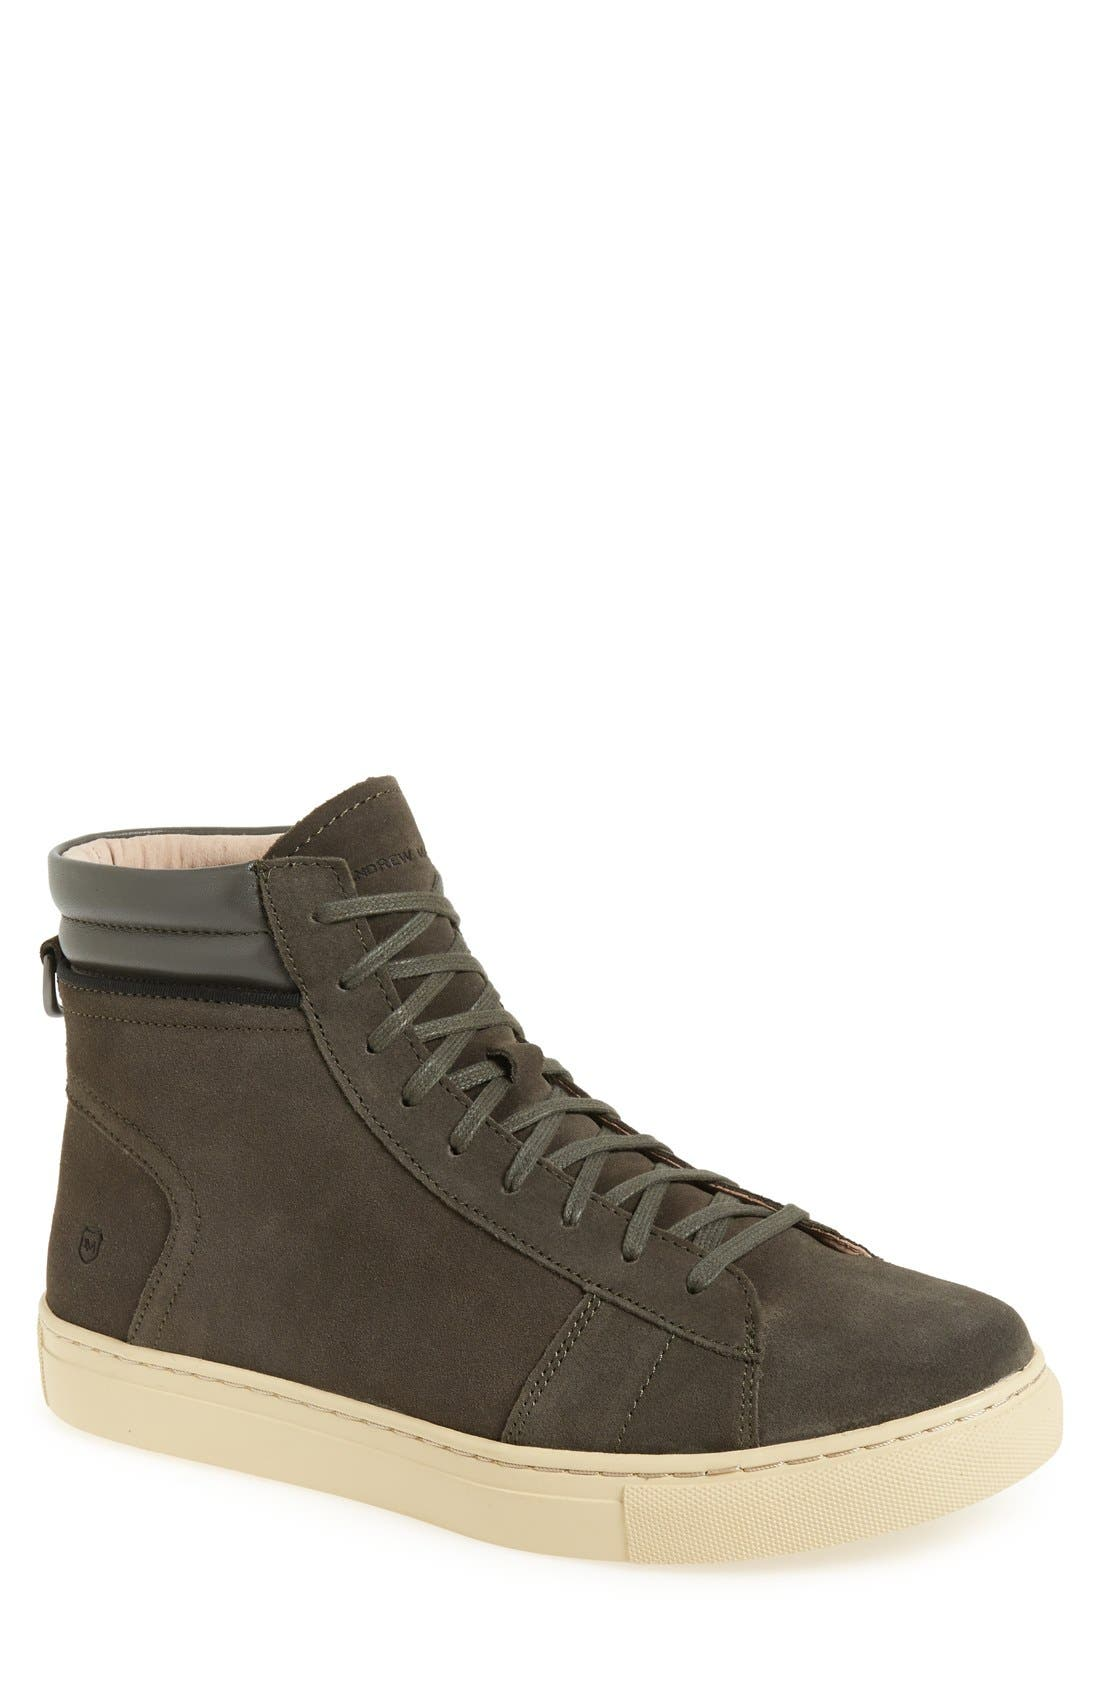 'Remsen' High Top Sneaker,                             Main thumbnail 1, color,                             038